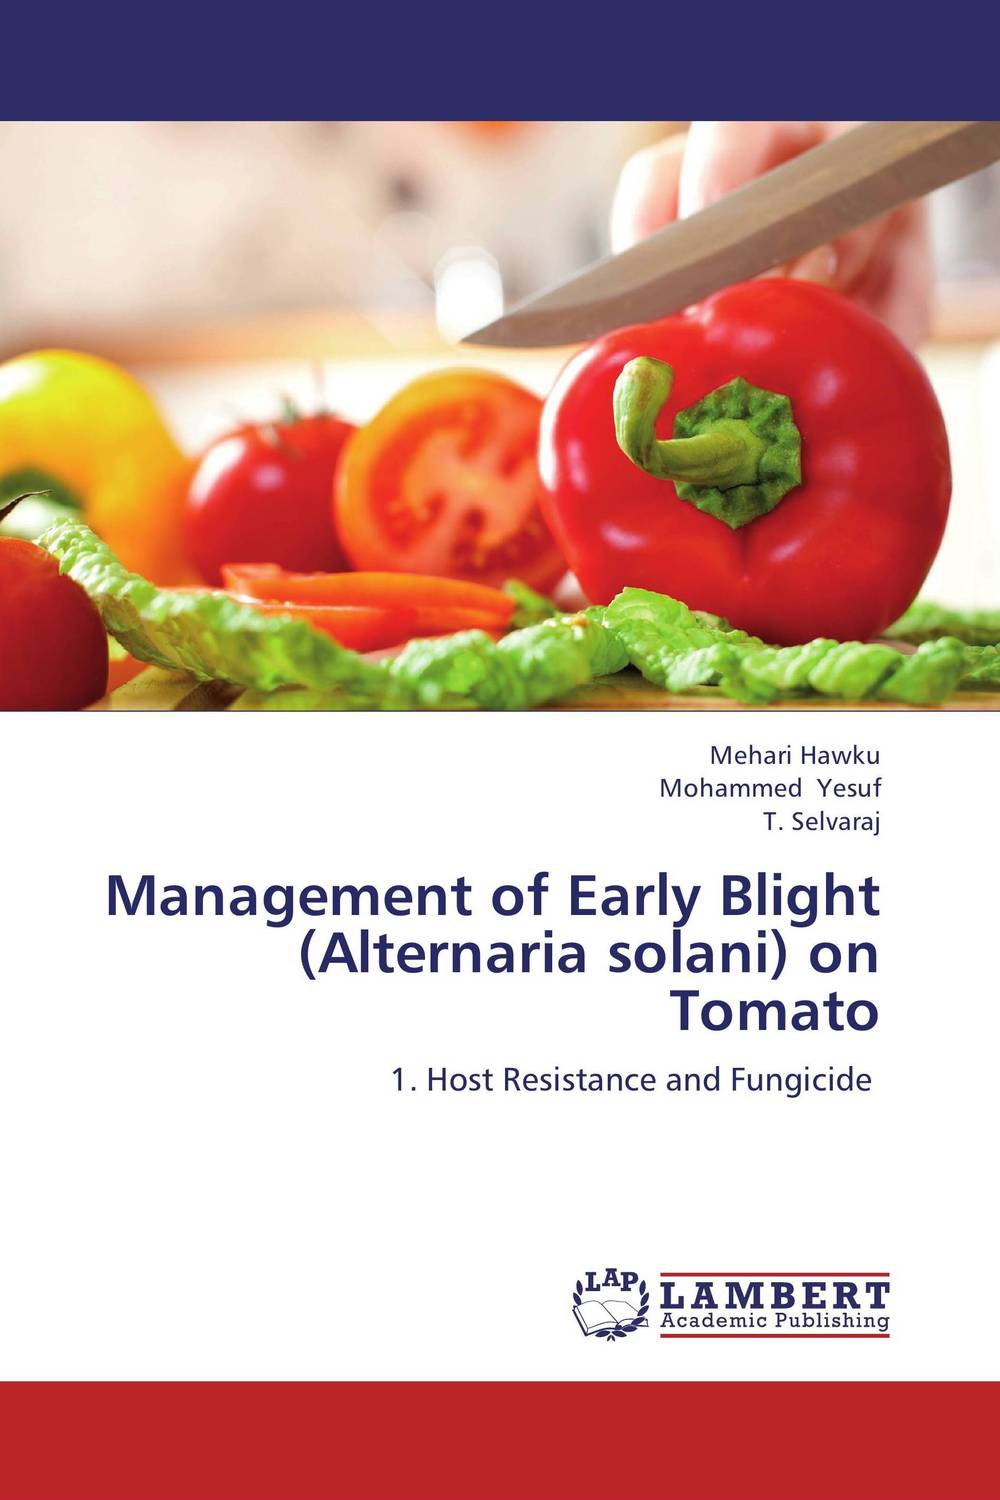 Management of Early Blight (Alternaria solani) on Tomato fungicidal management of sheath blight of rice